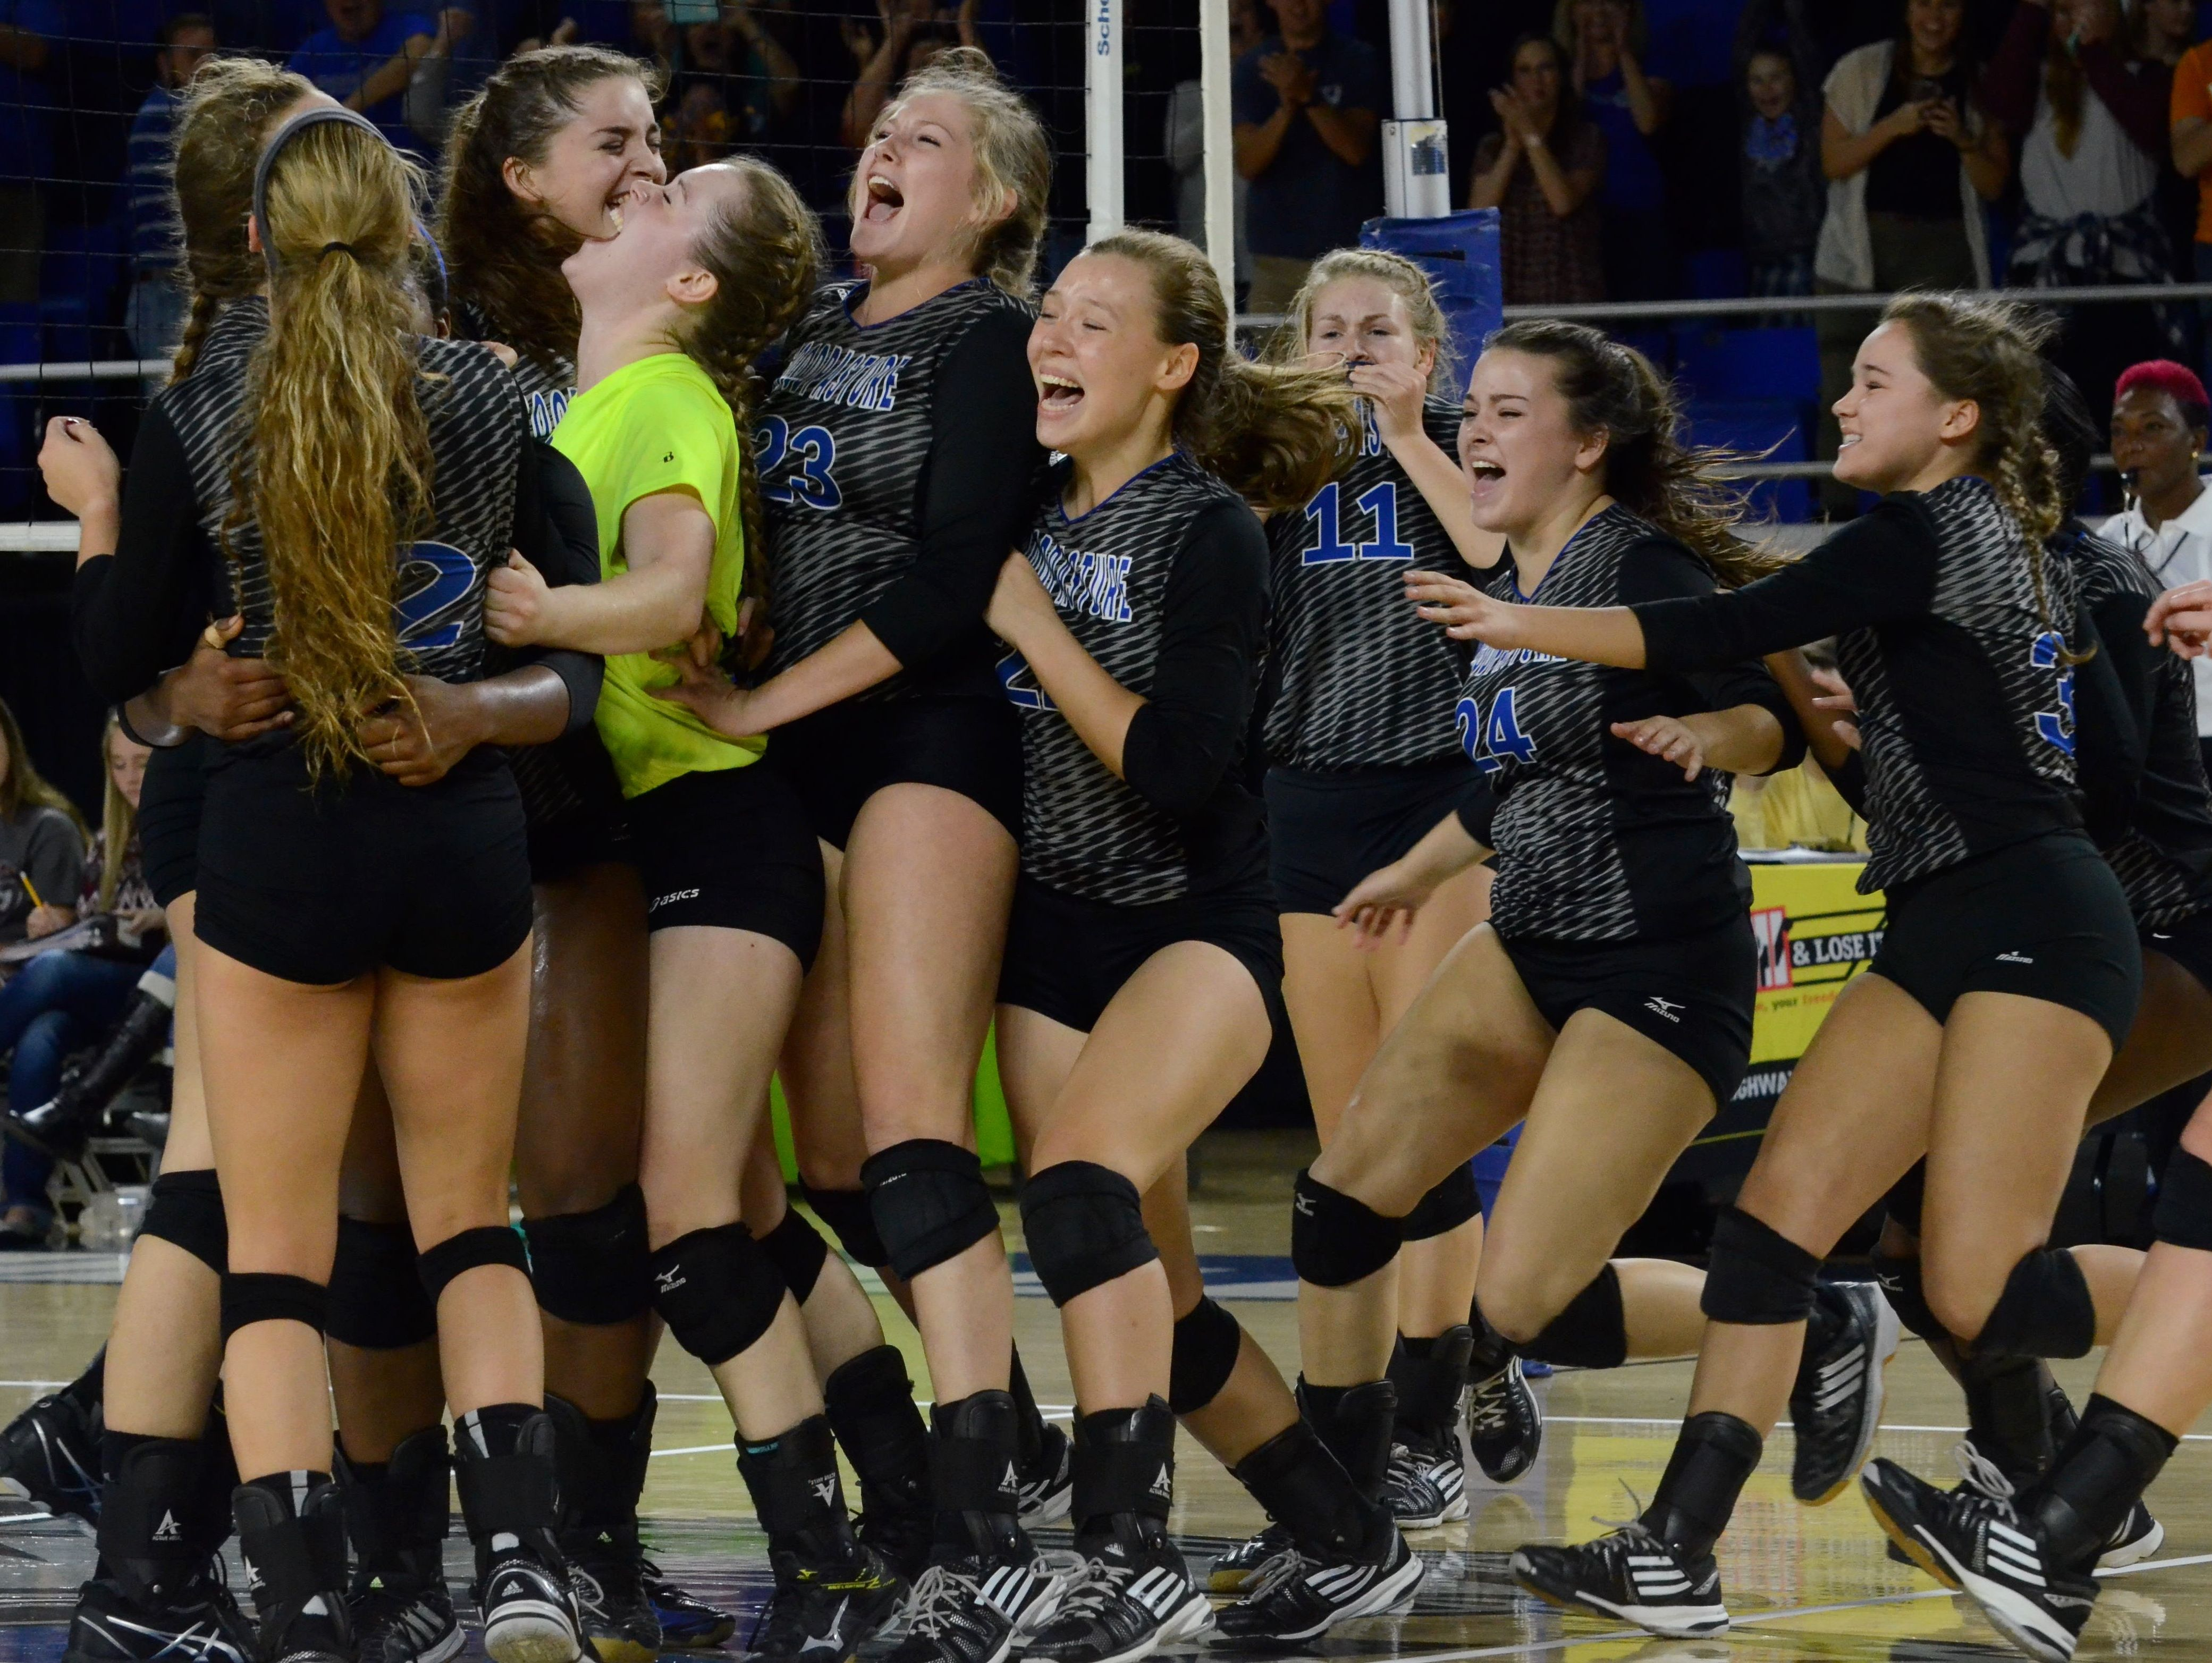 Goodpasture's volleyball team has won four consecutive Division I Class A state championships.